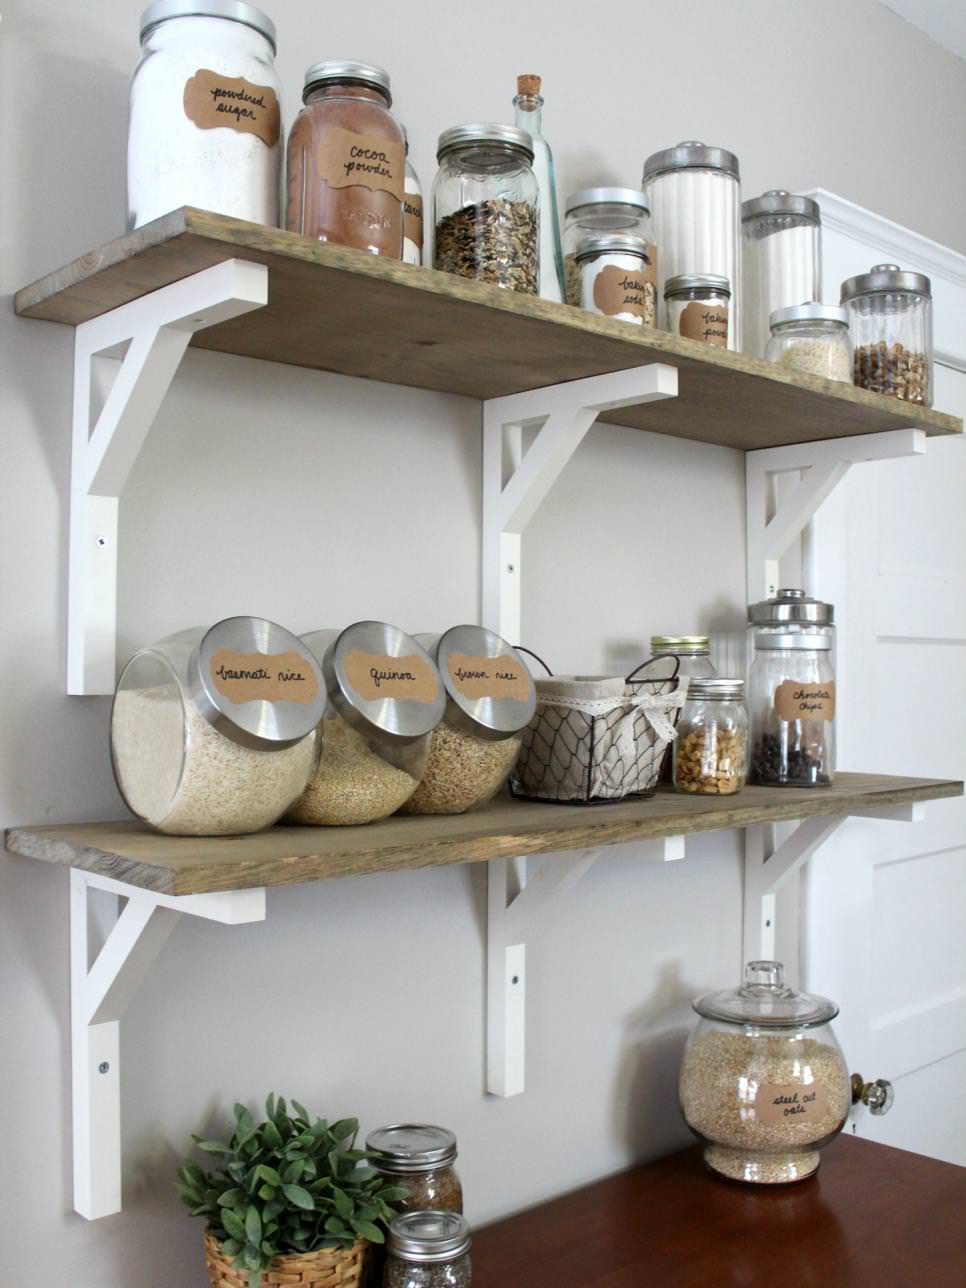 Best ideas about DIY Kitchen Shelves . Save or Pin 23 DIY Shelves Furniture Designs Ideas Plans Now.